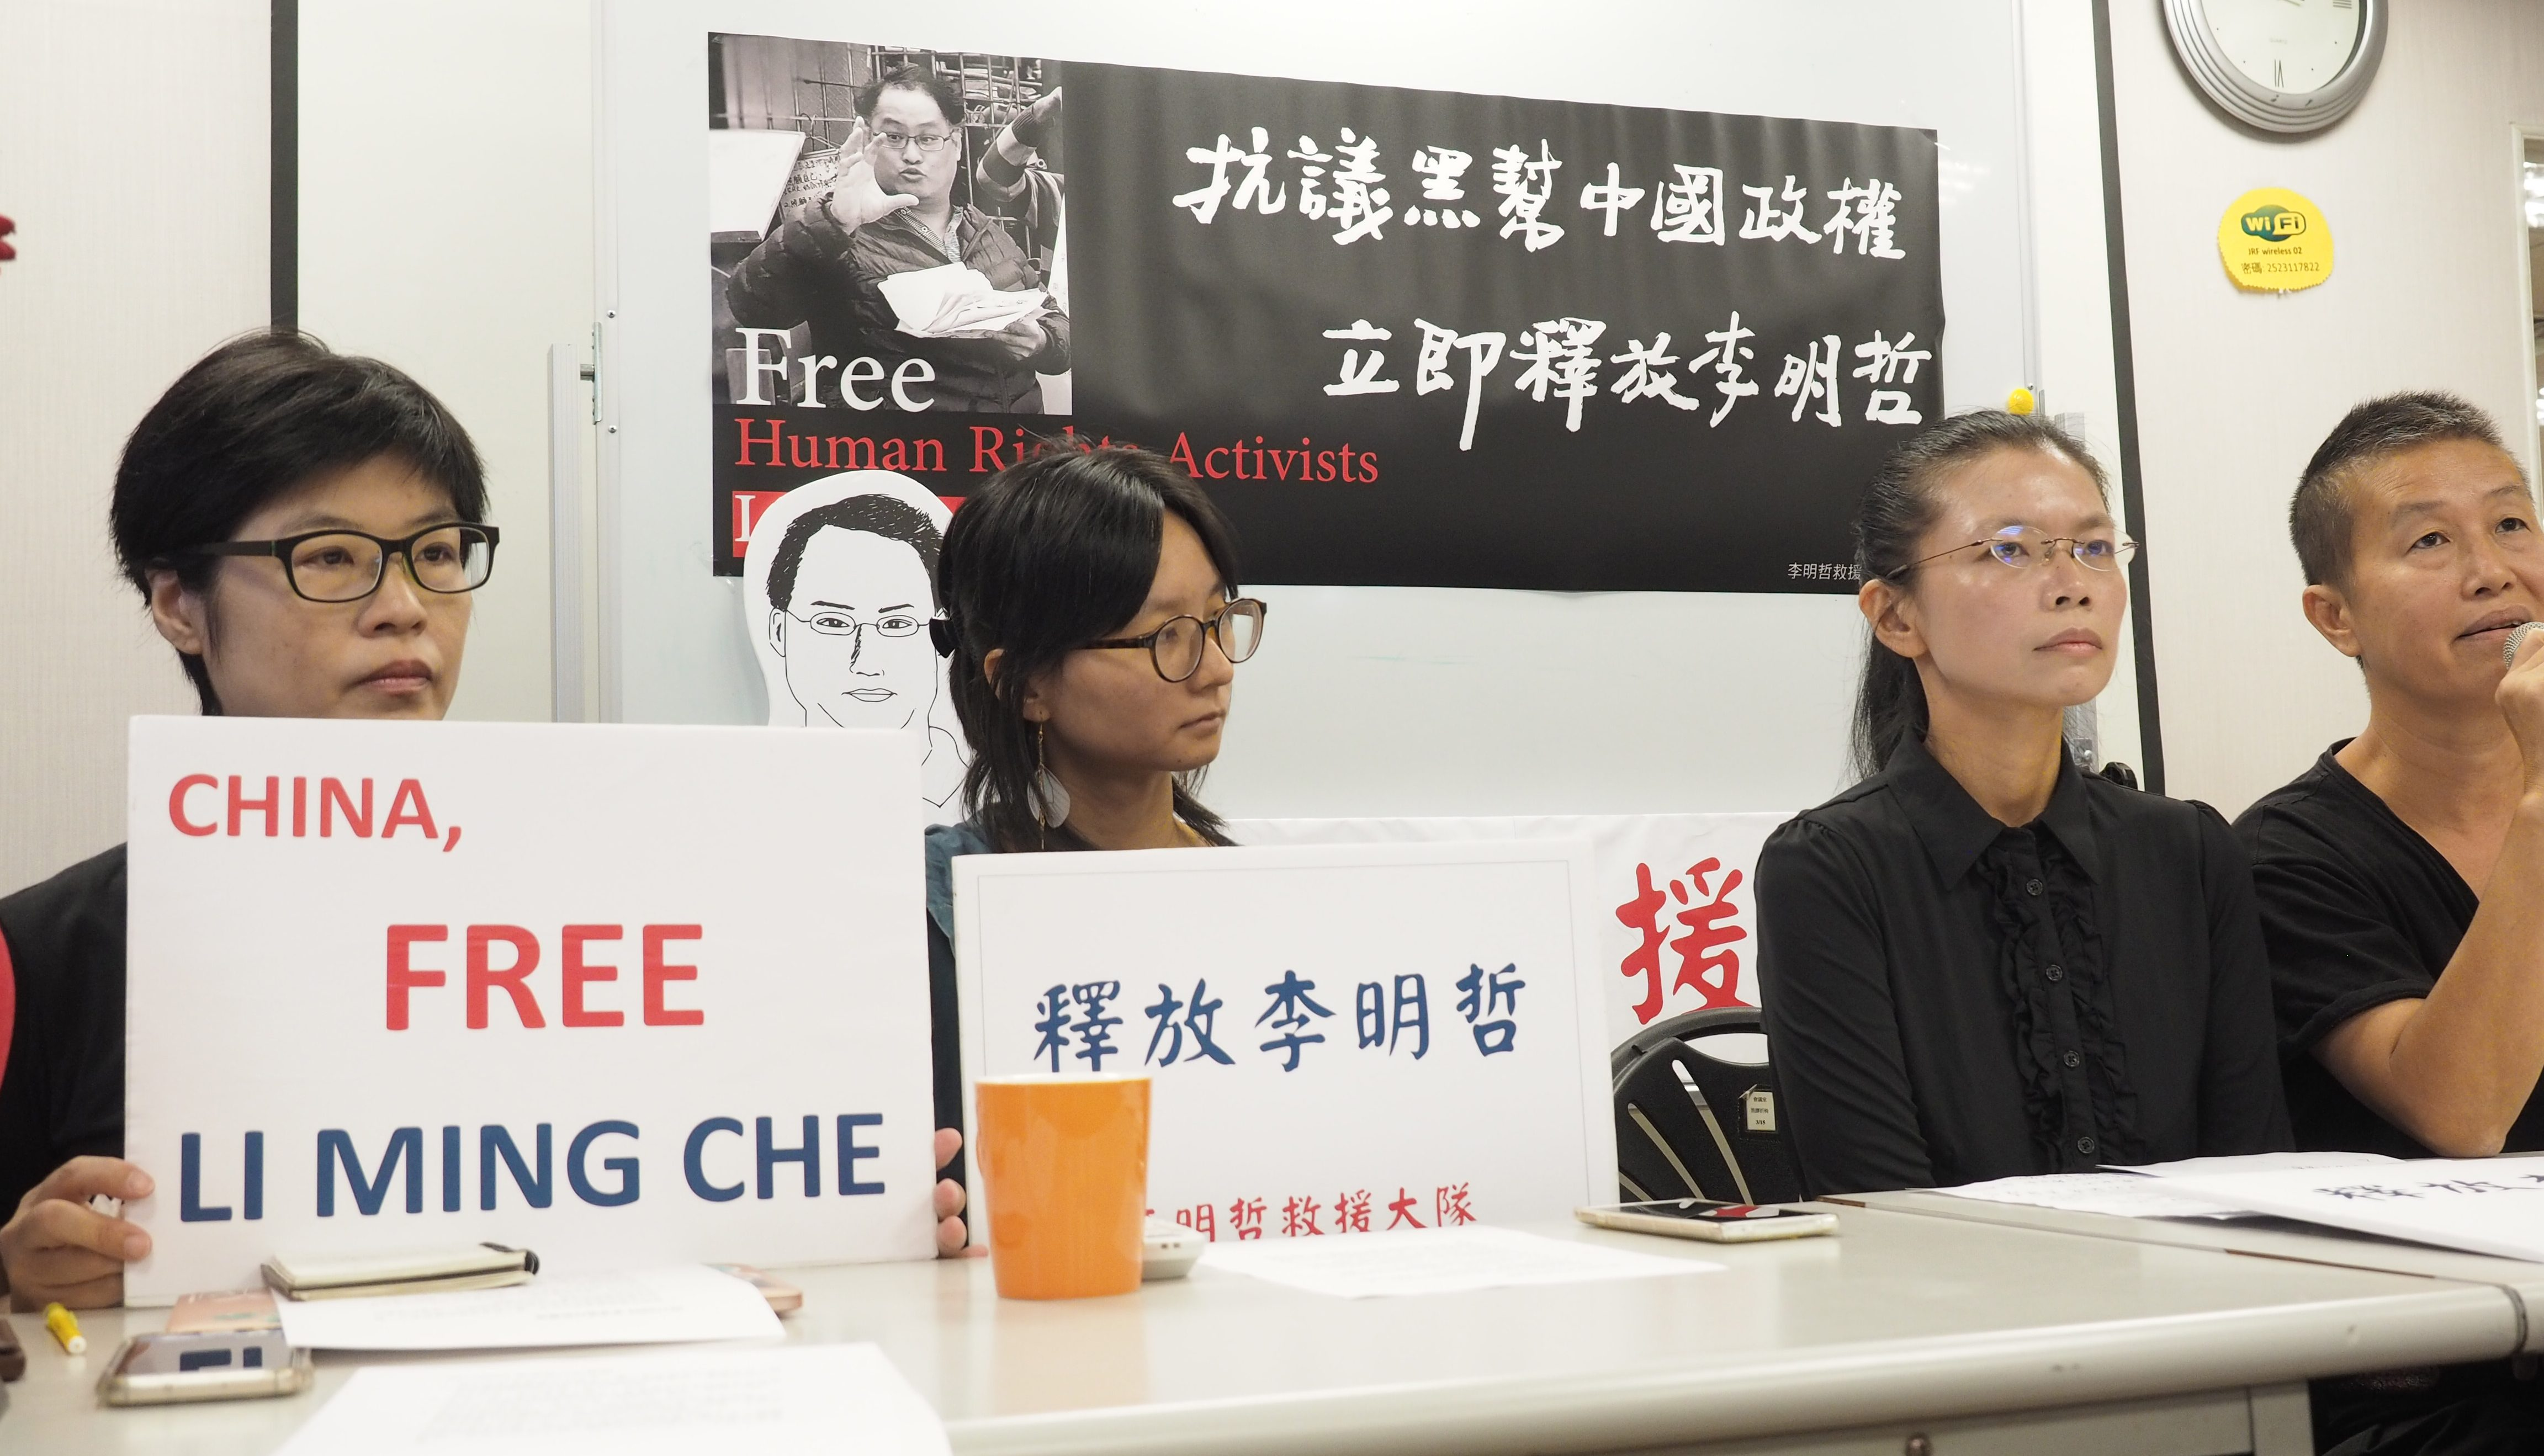 Taiwanese activist pleads guilty in Chinese court, but wife insists he is innocent